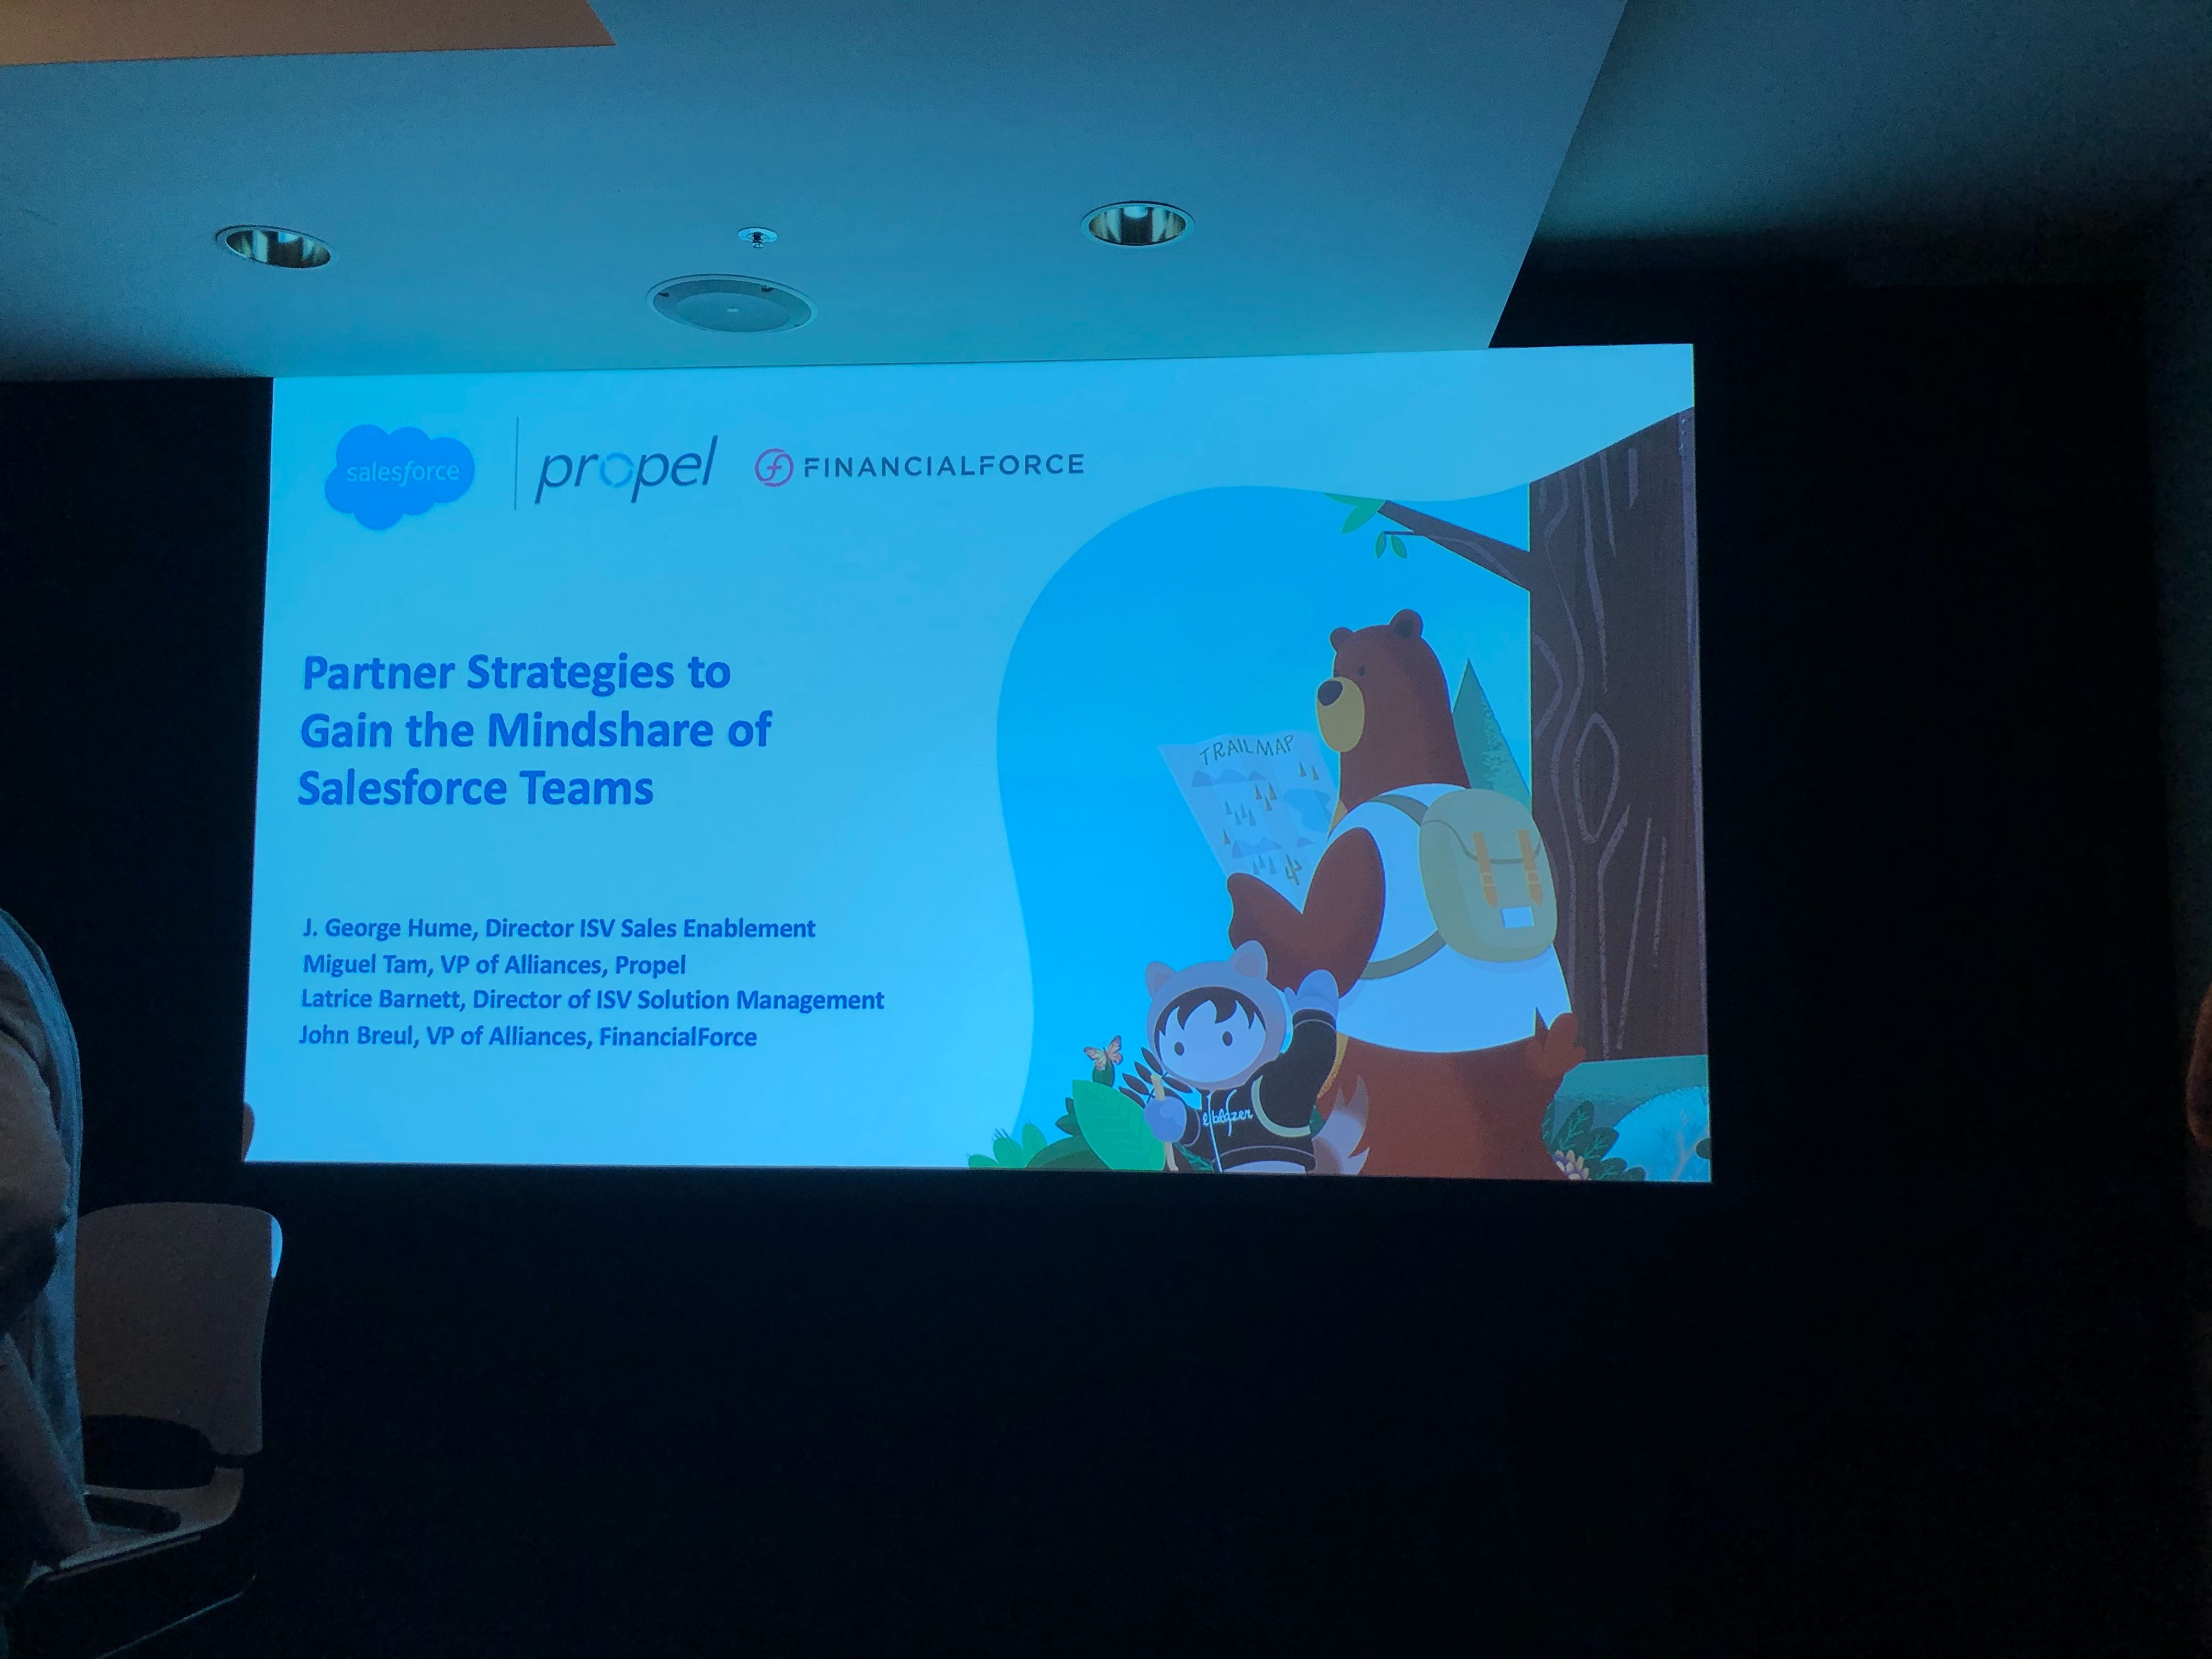 Propel at Dreamforce 2019